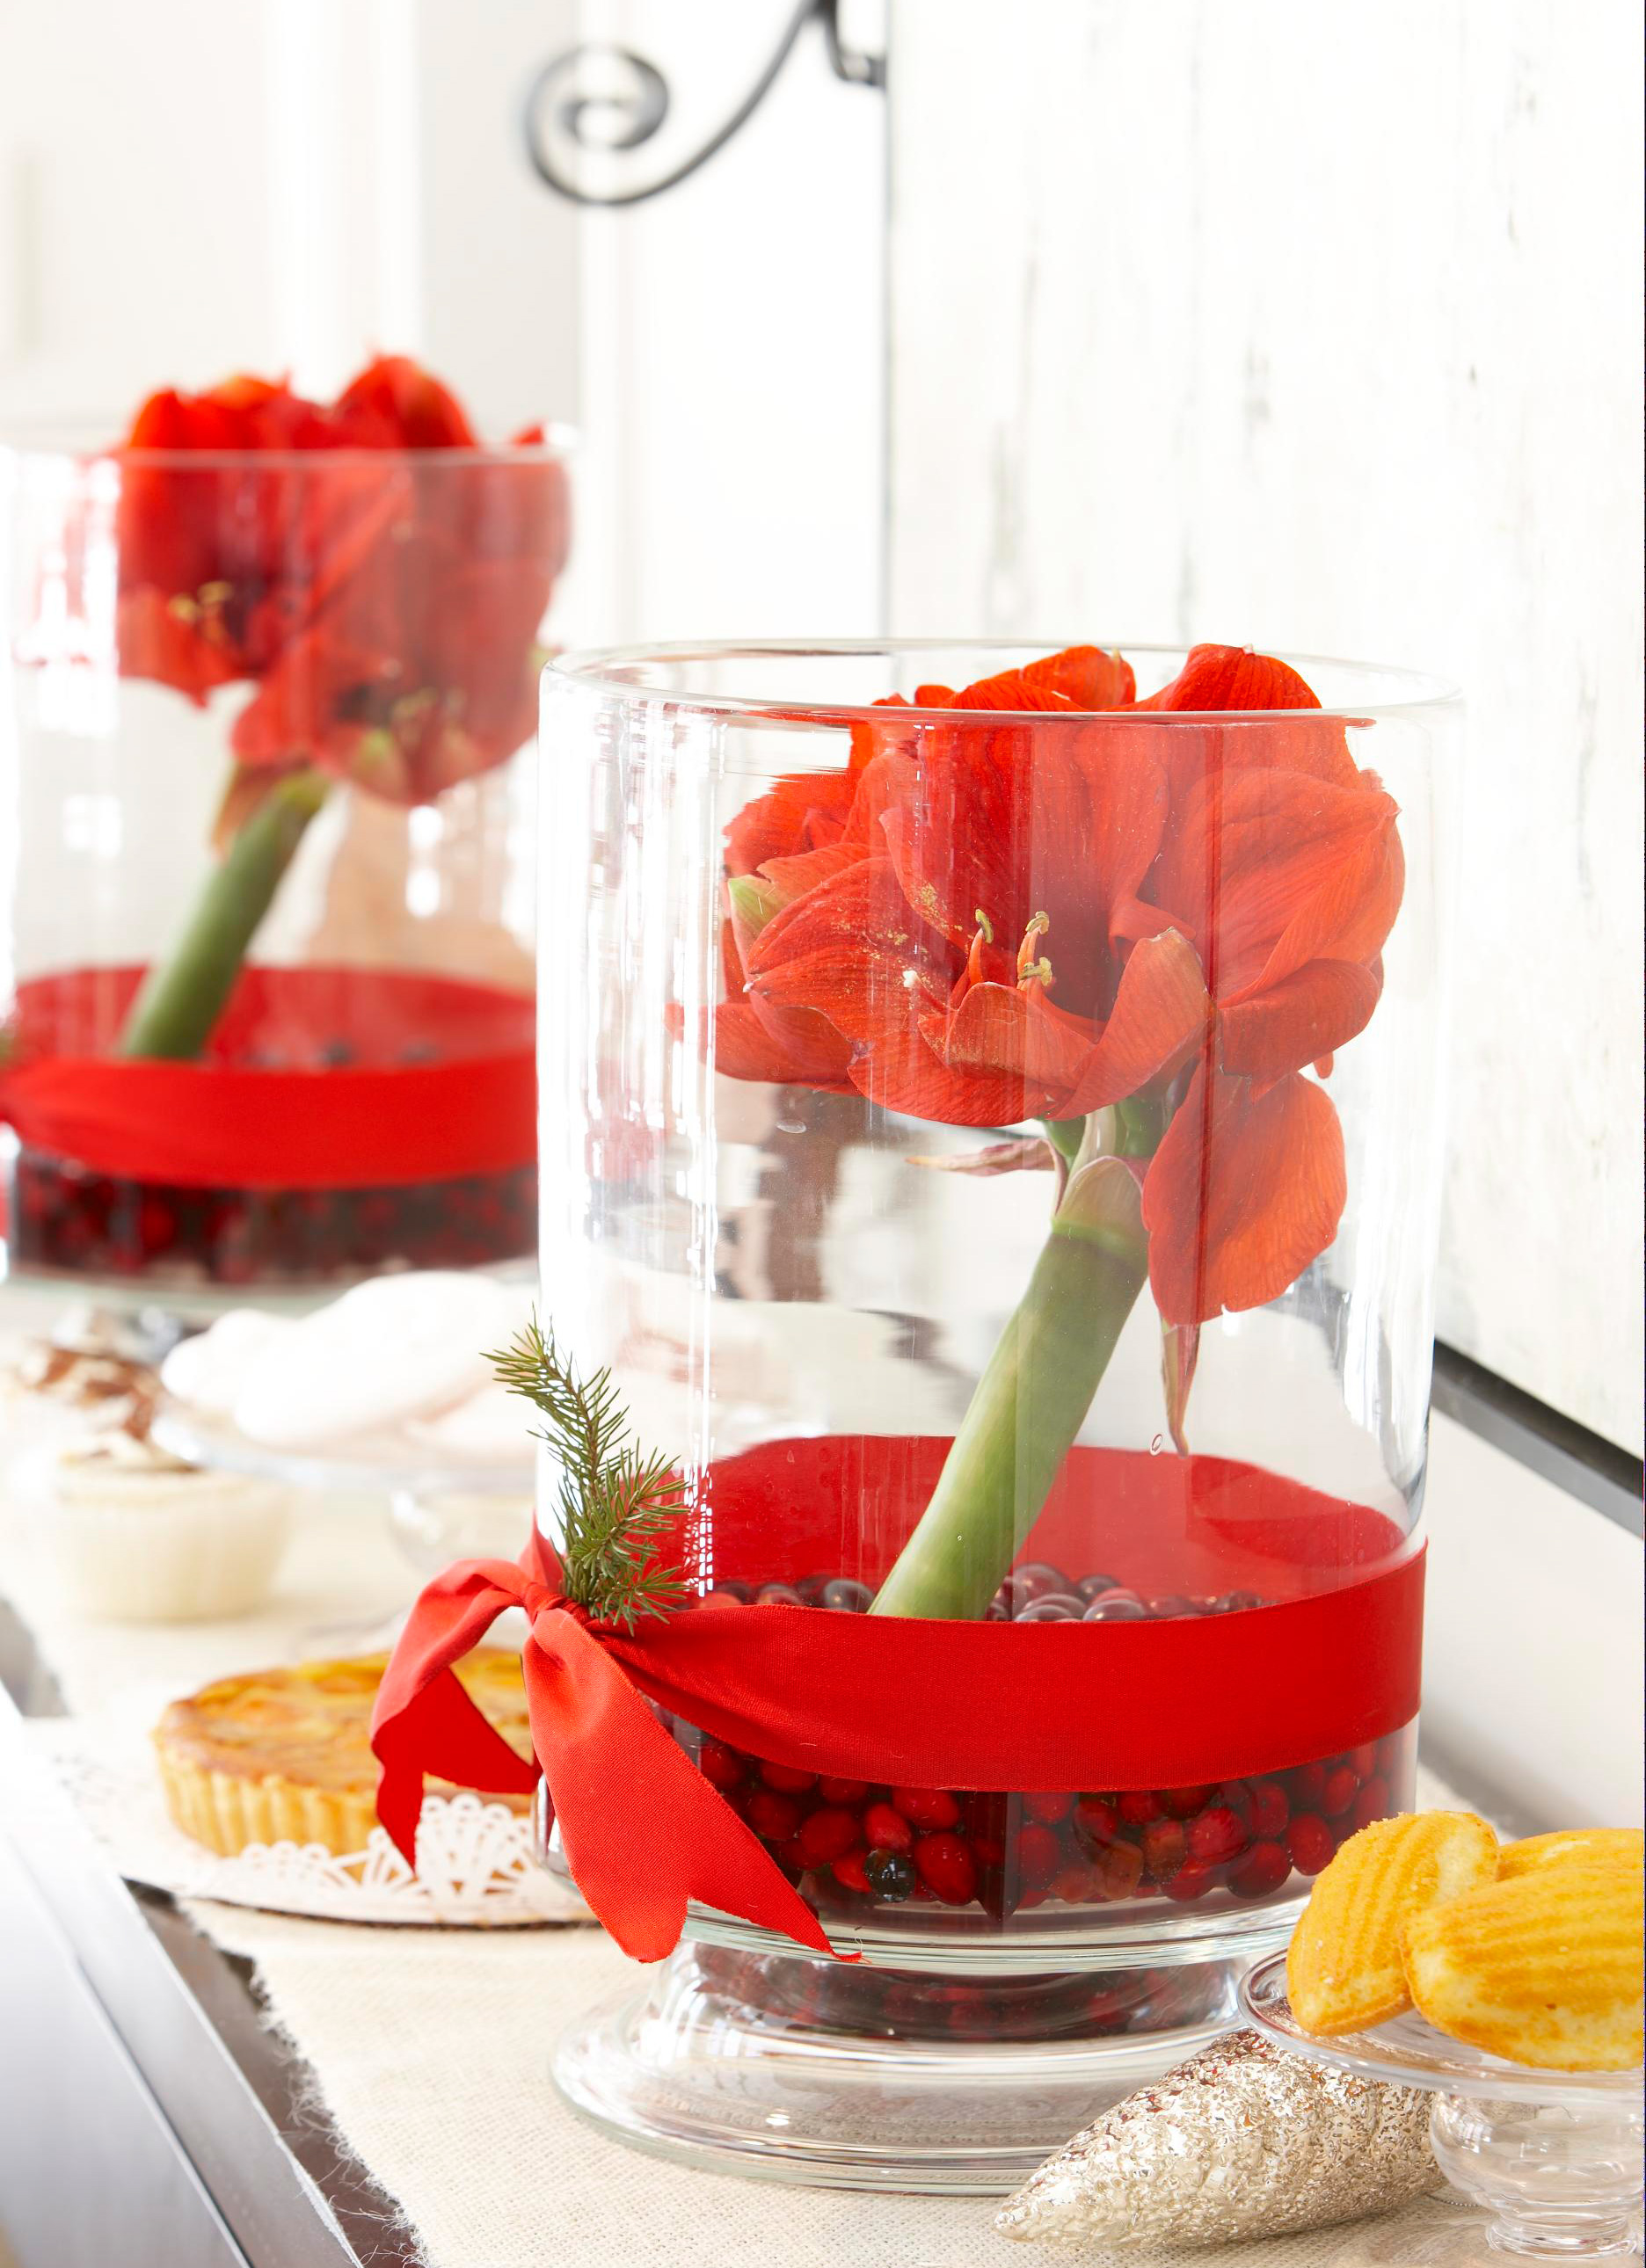 Christmas centerpiece ideas: amaryllis